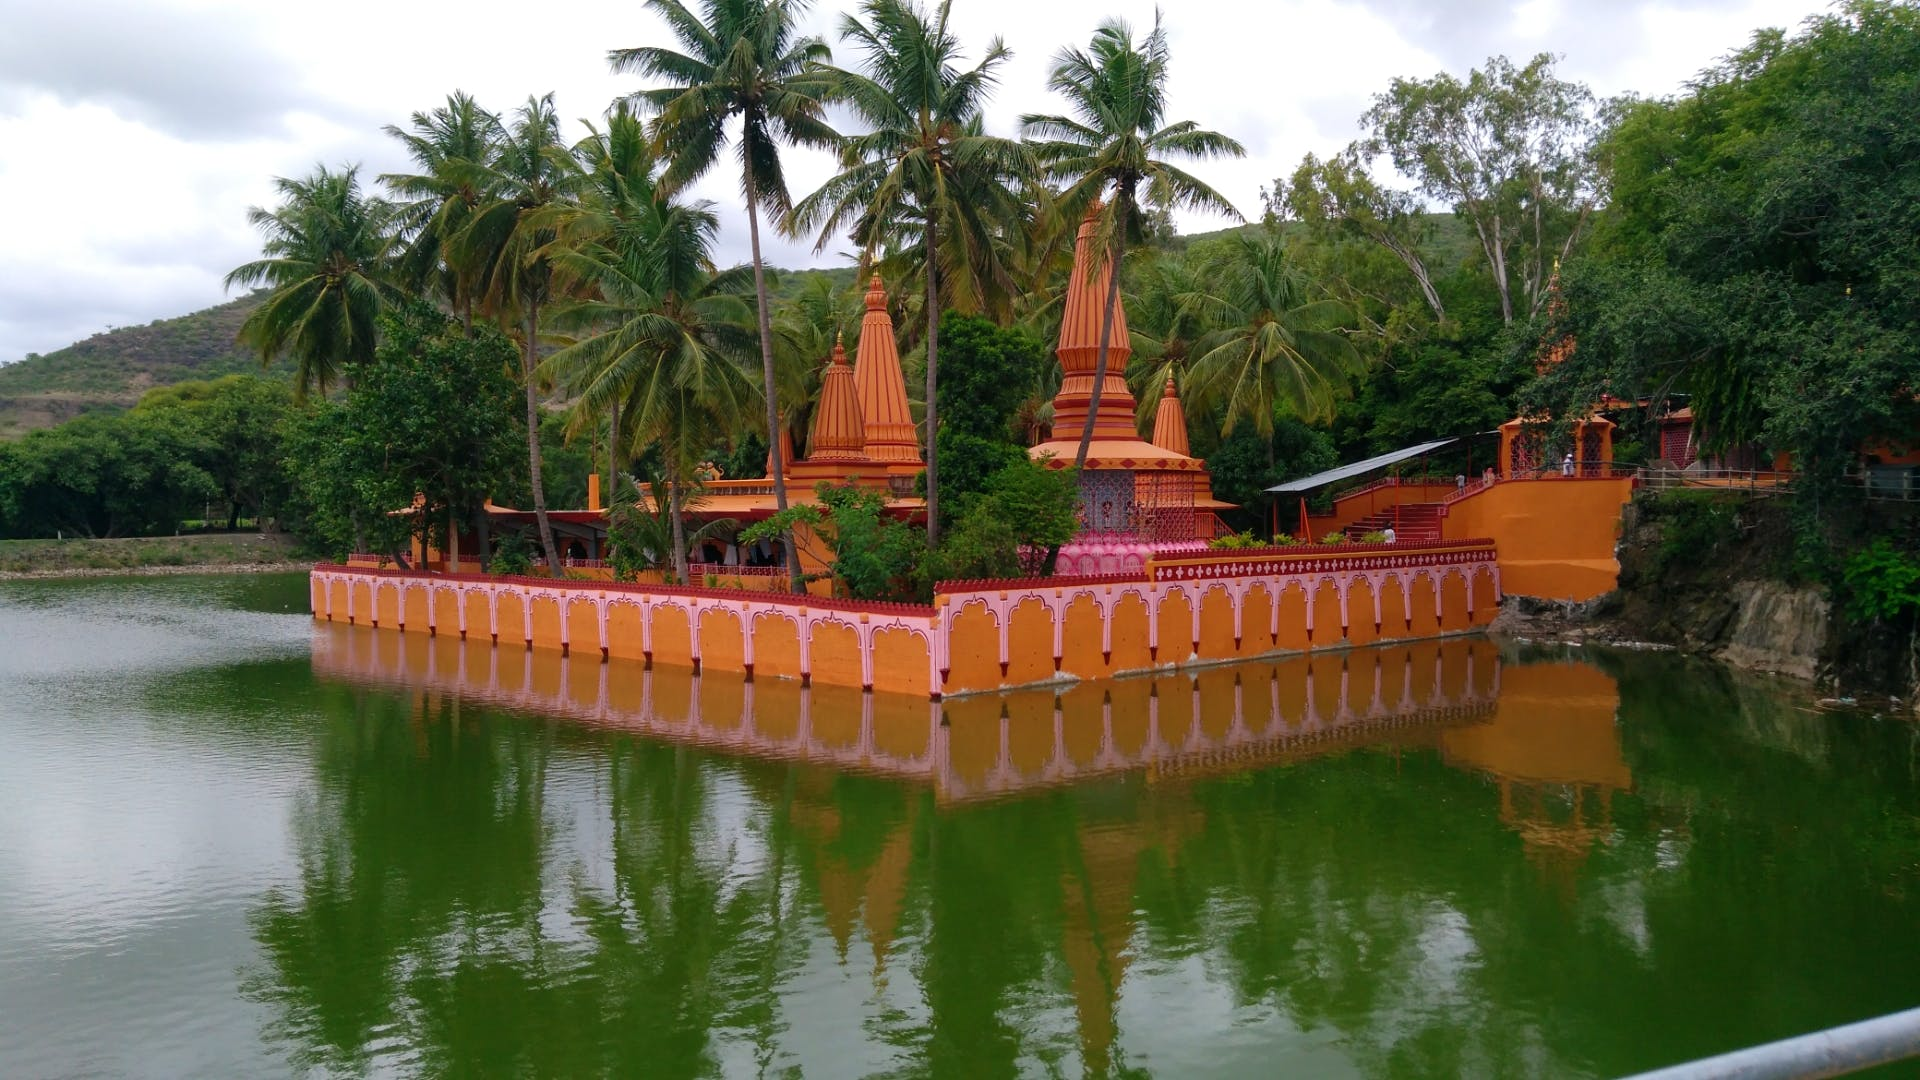 Temple,Wat,Botany,Place of worship,Architecture,Pond,Chinese architecture,Reflection,Tree,Building